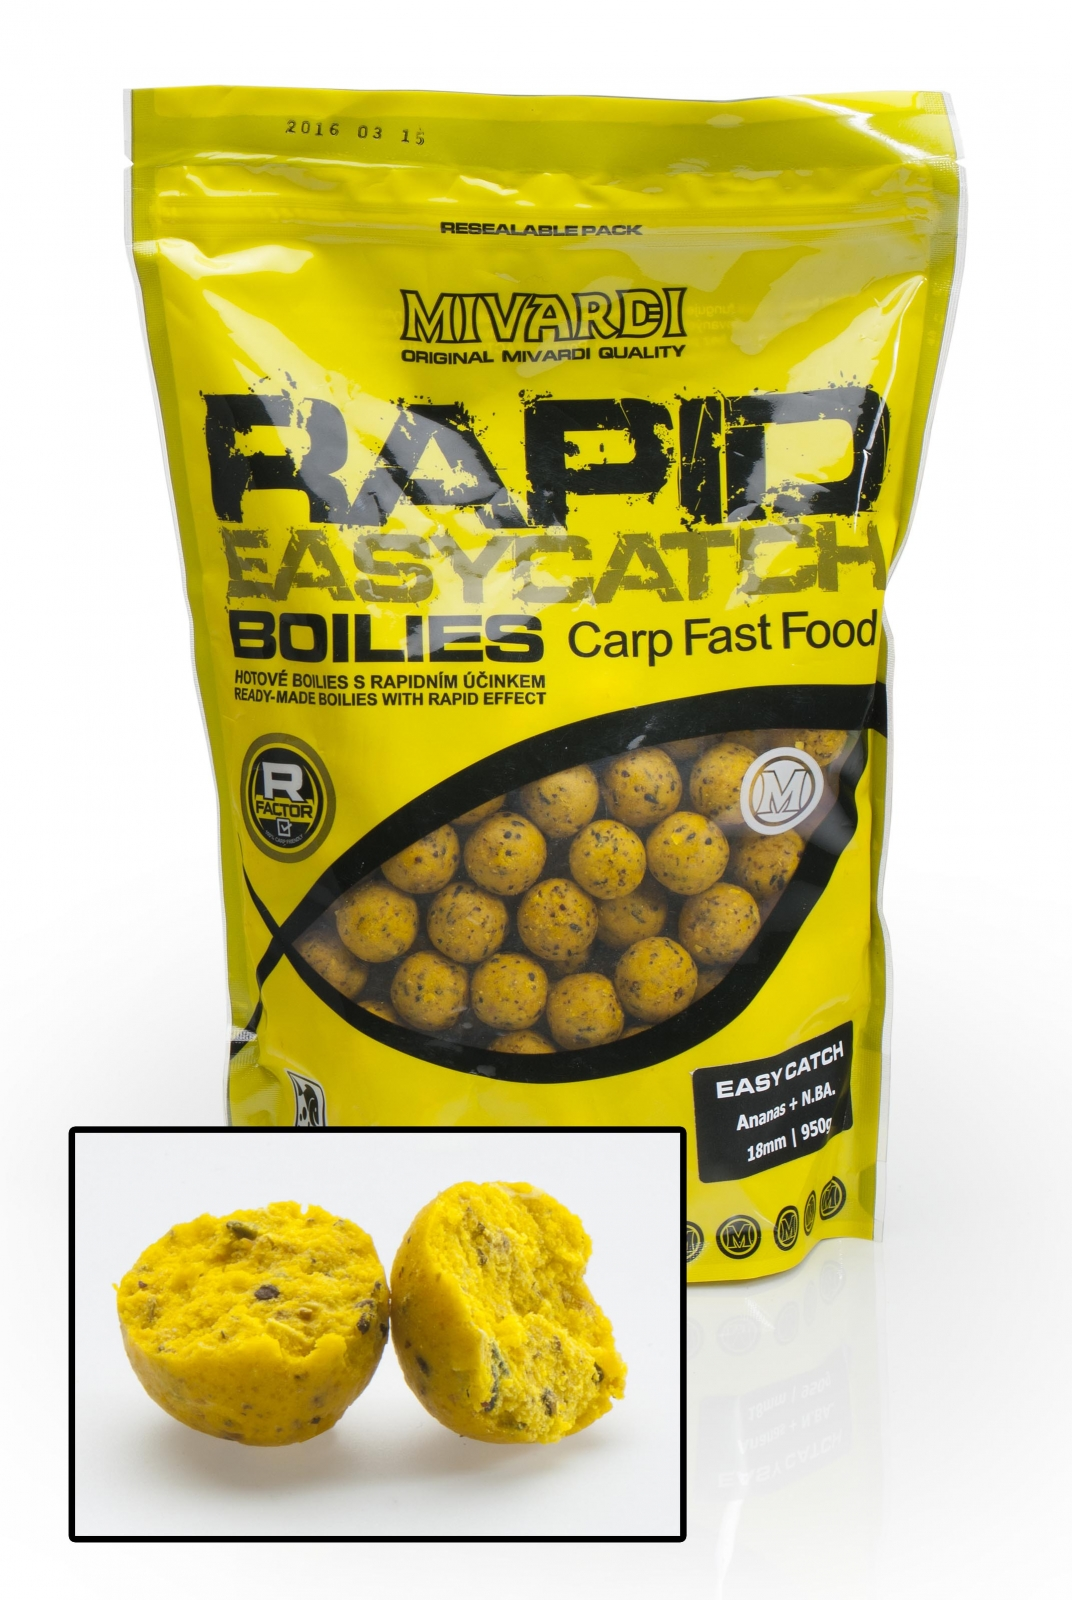 Mivardi boilies Rapid Easy Catch - Ananas +N.BA. 950g 18mm